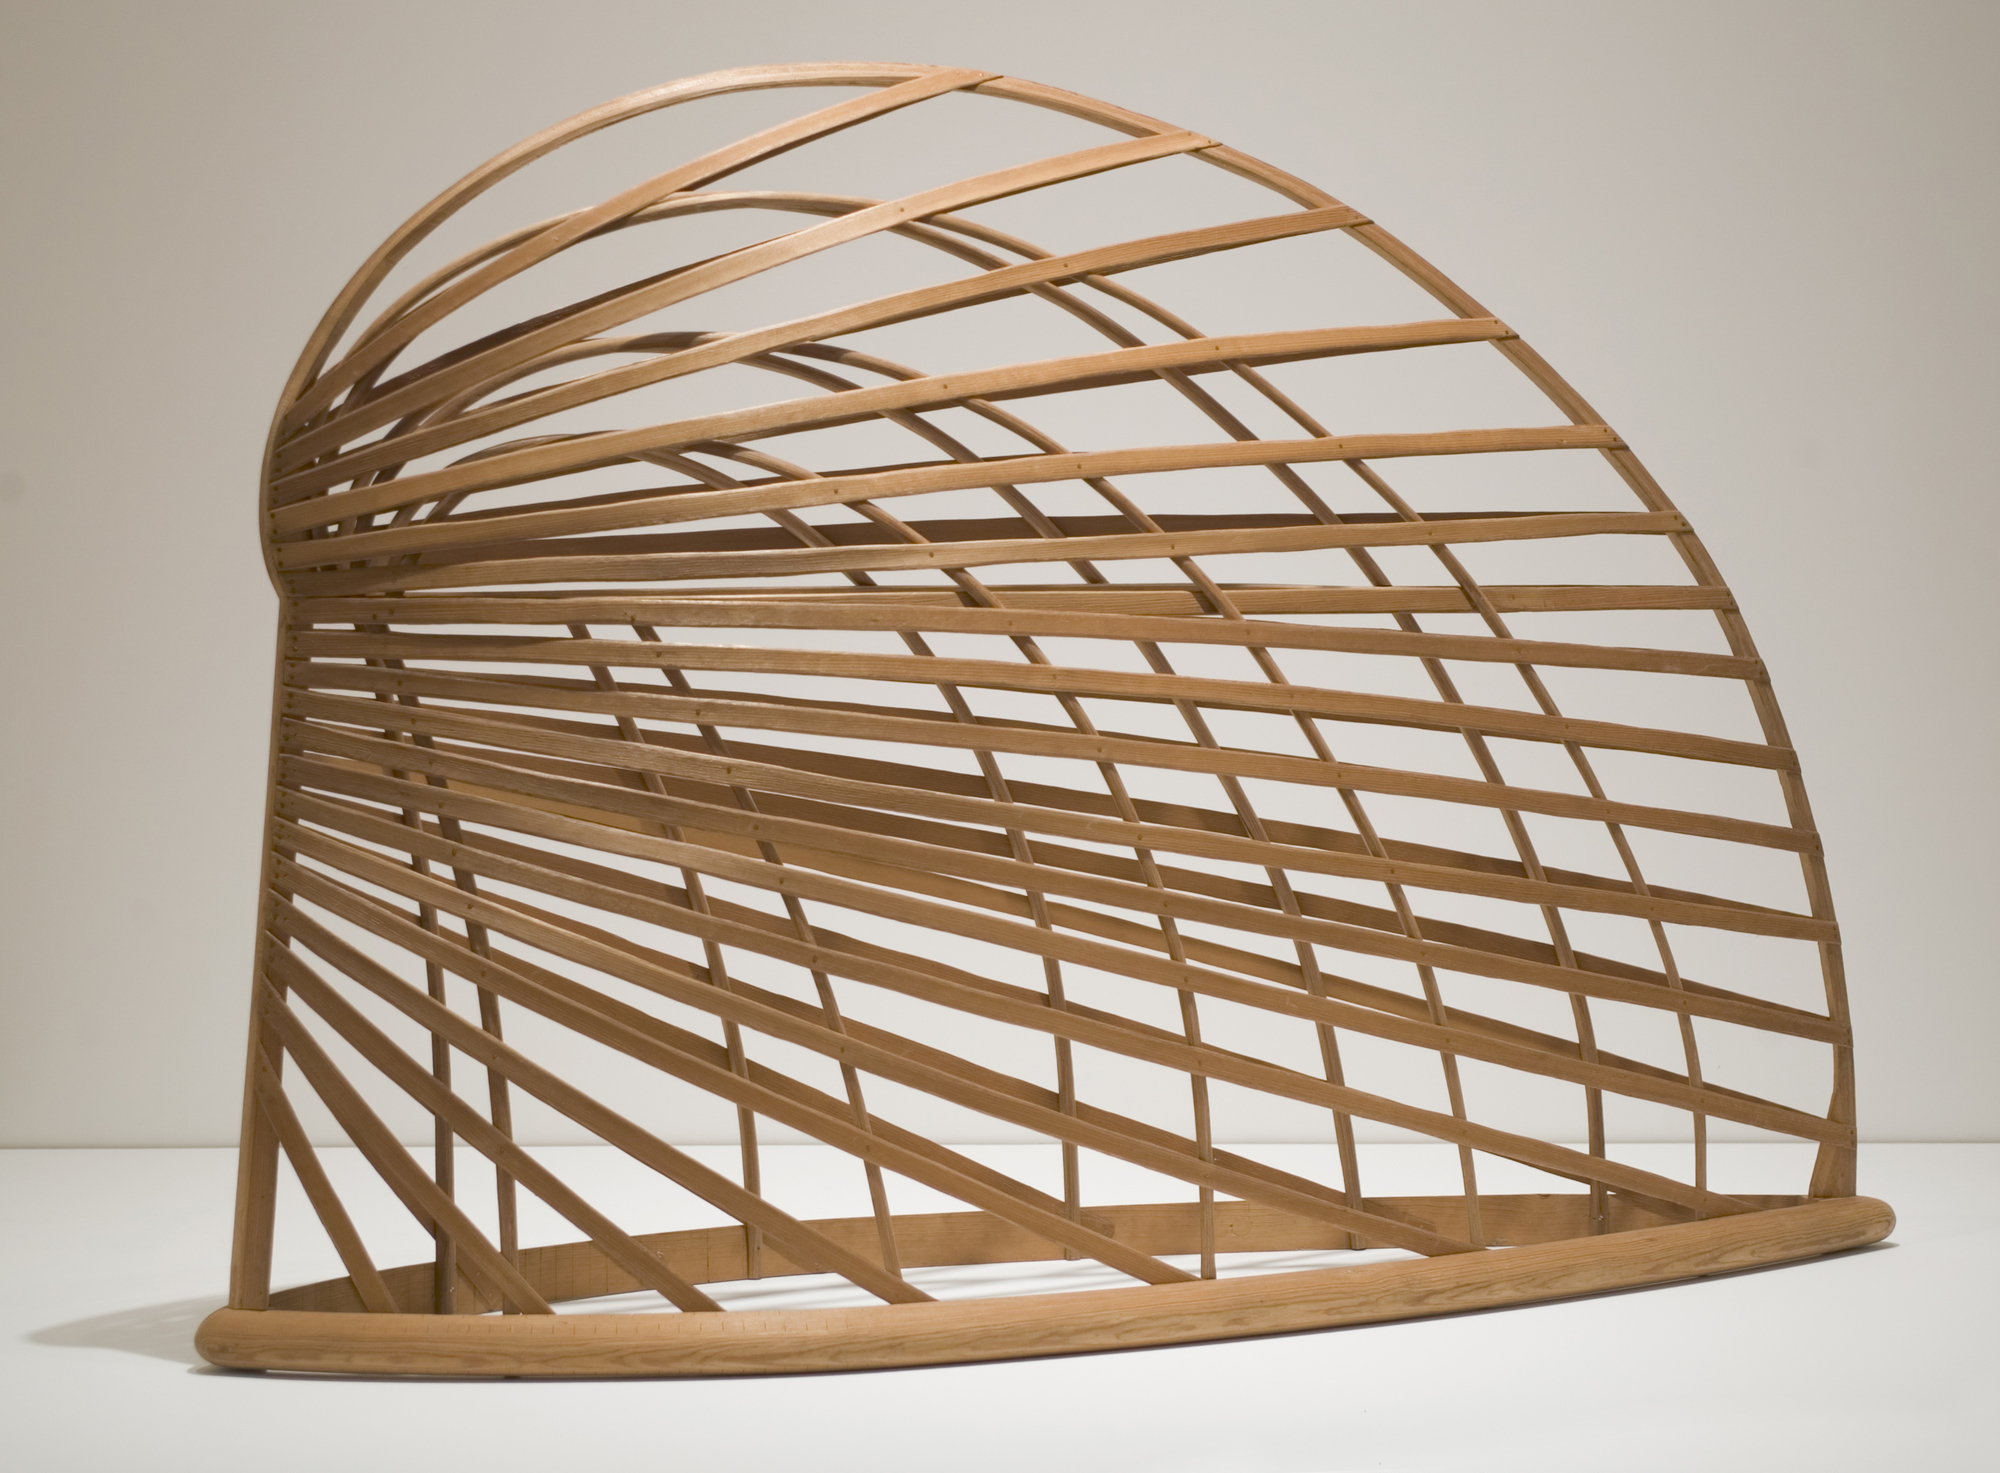 LA Art Now: Martin Puryear Named To Represent US at 2019 Venice Biennale